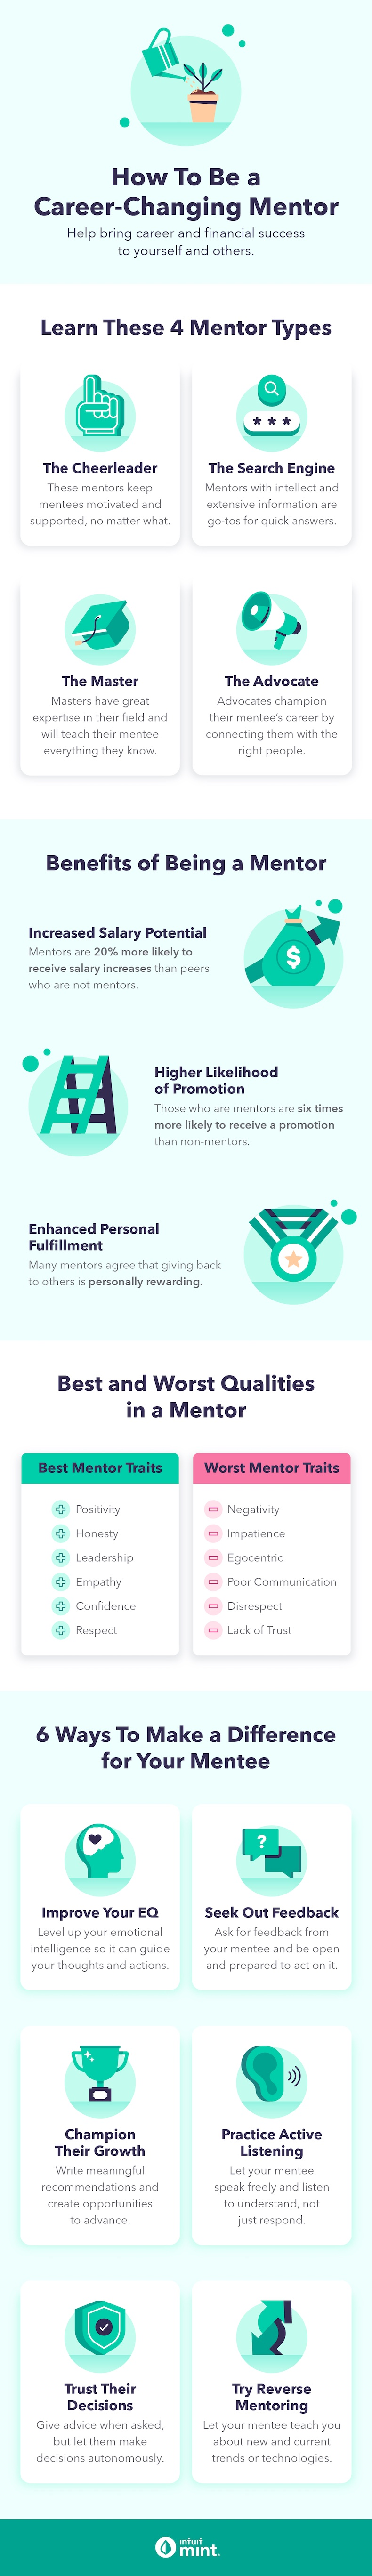 How to be a career-changing mentor at work infographic